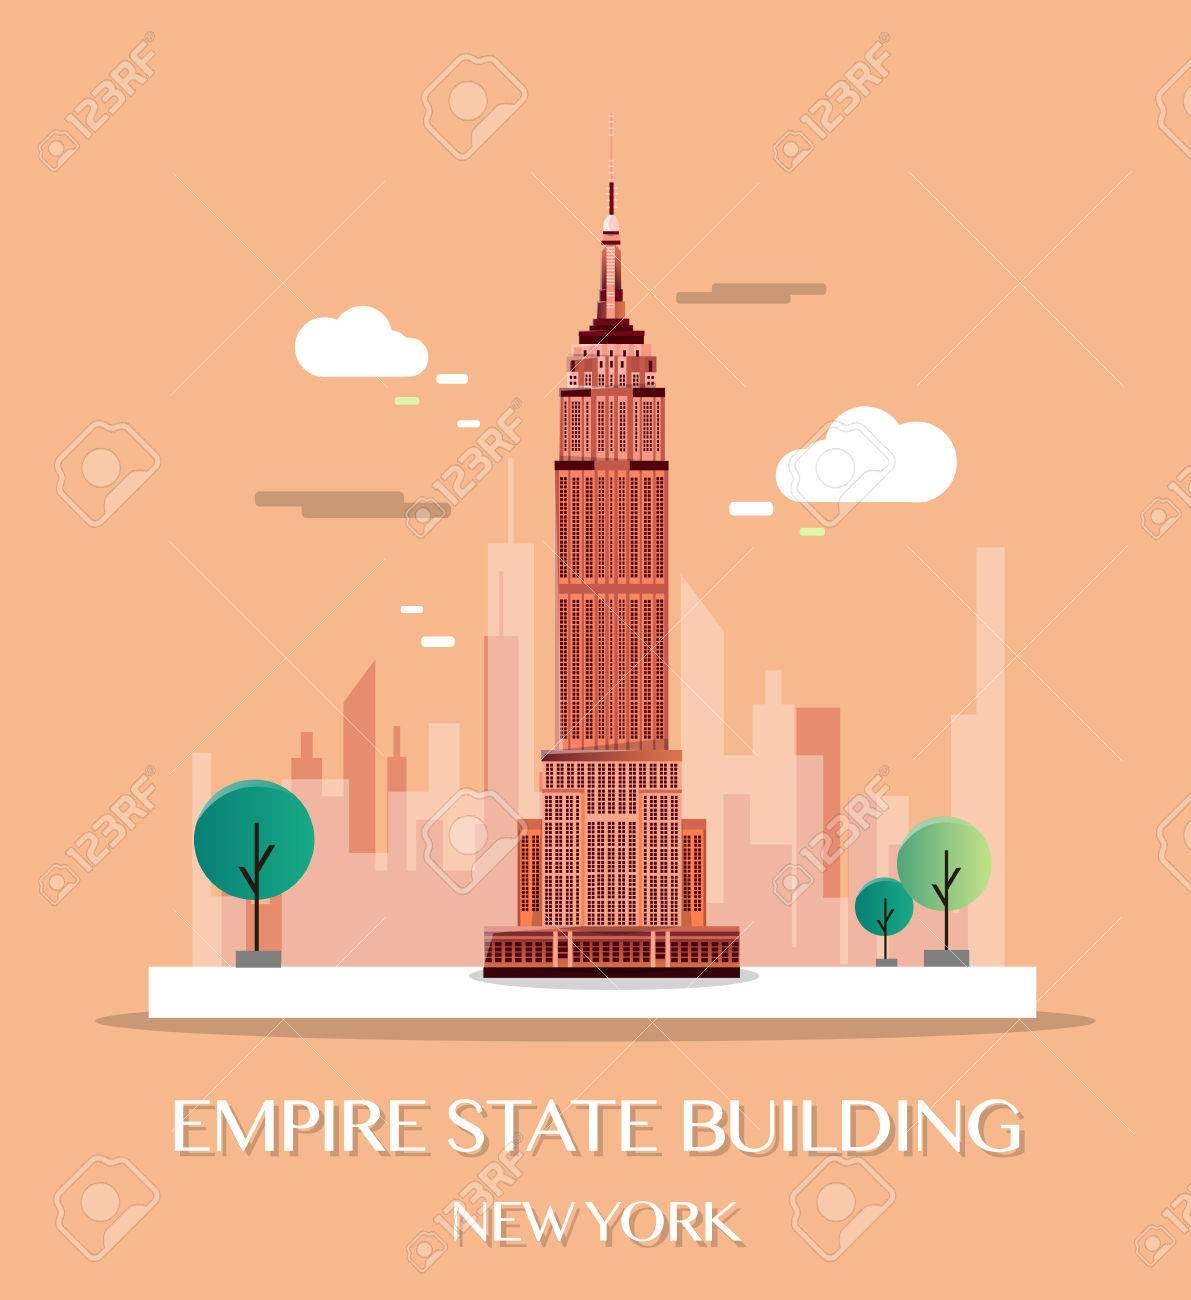 empire state building vector illustration royalty free cliparts